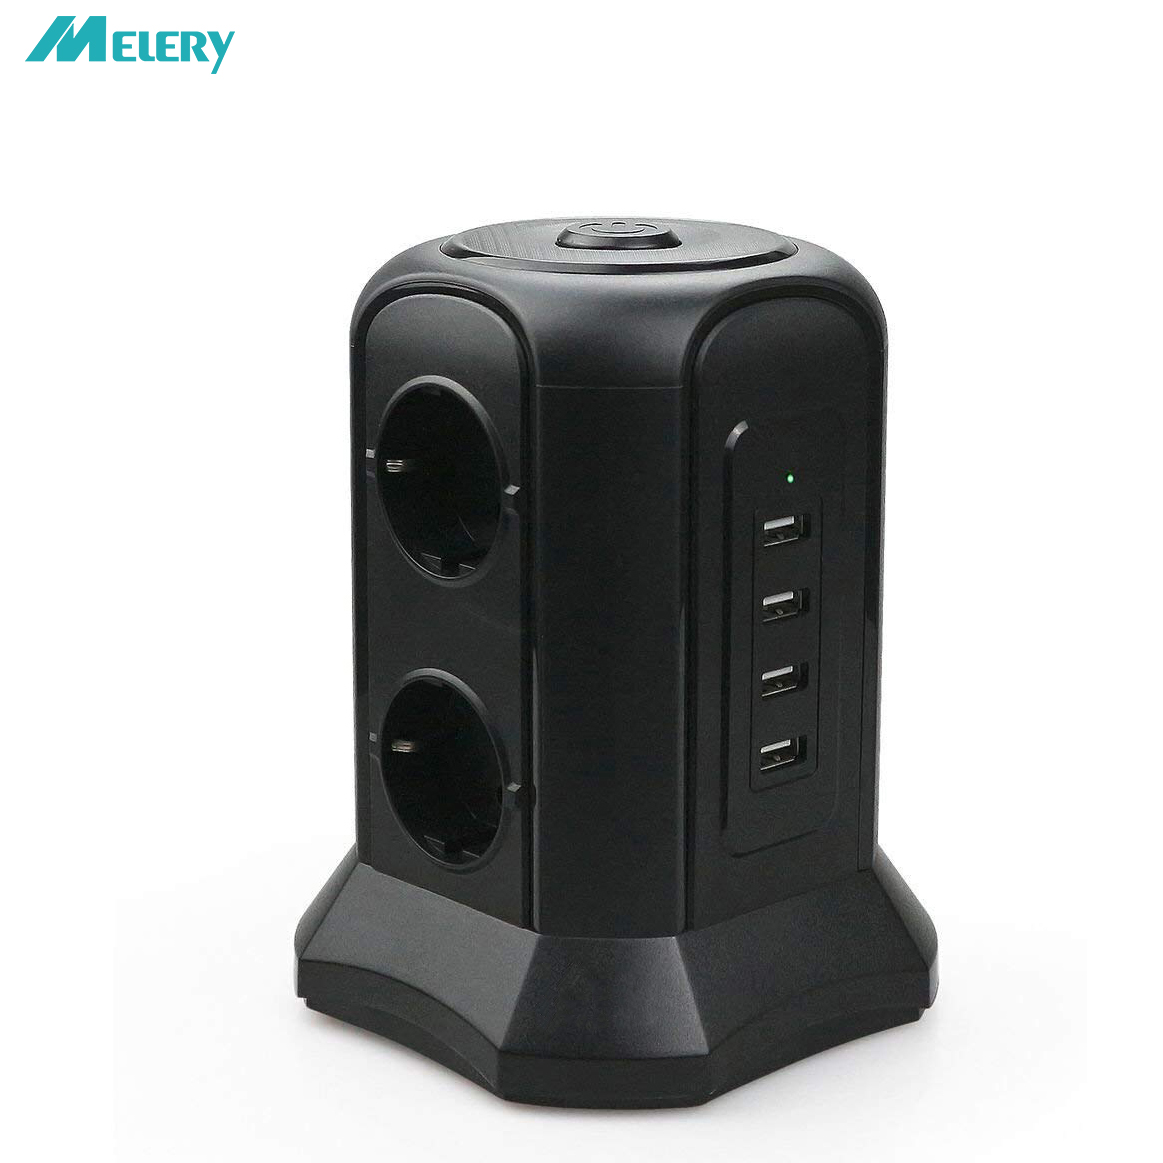 Power Strip Surge Protection Multiple EU Outlets 4 USB Socet with USB Power Adapter 2m Extension